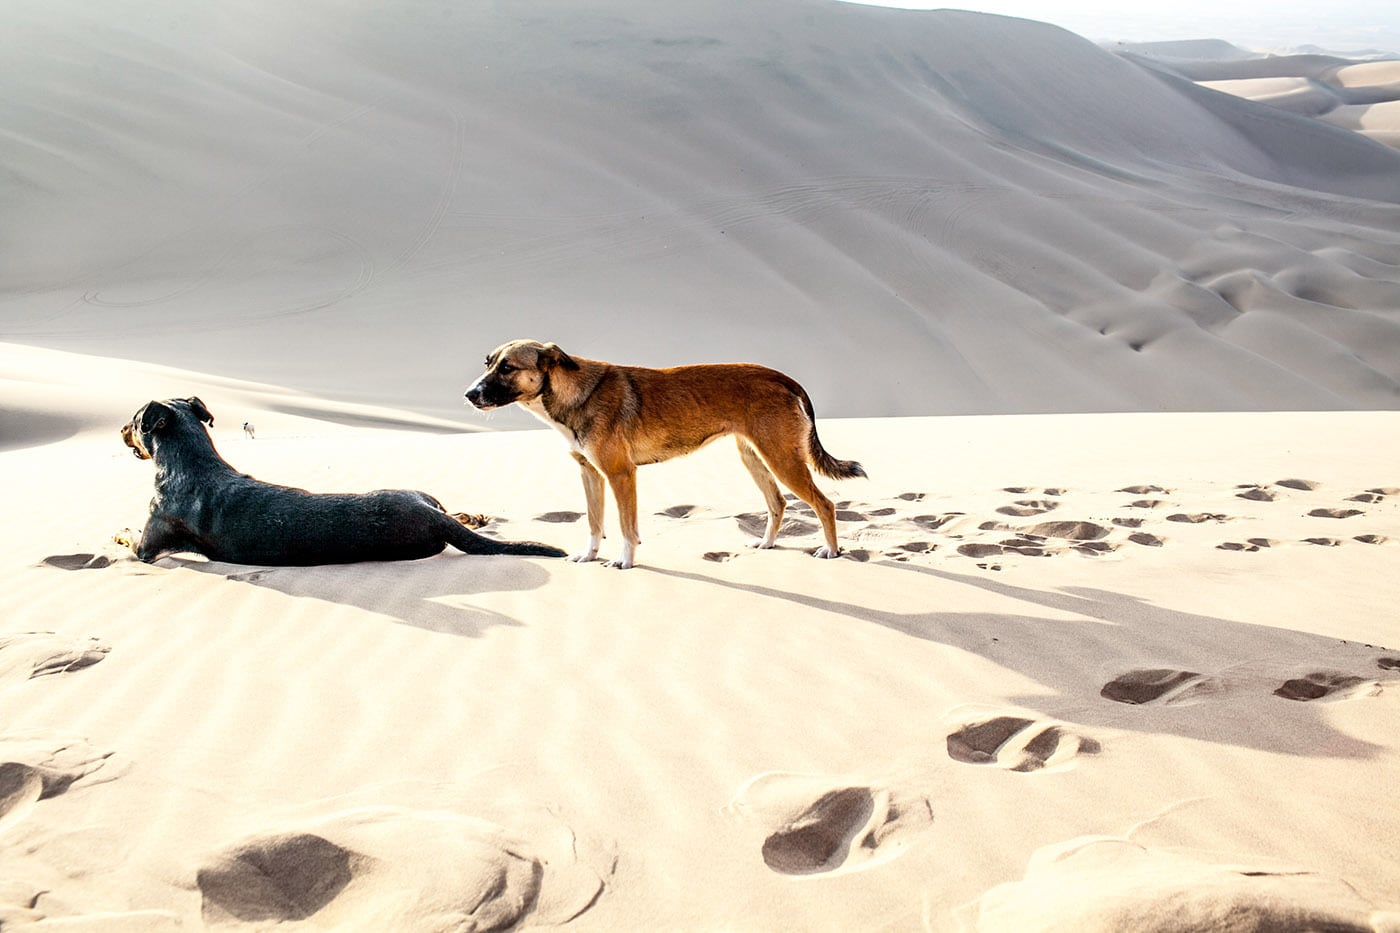 Dogs in the sand dunes in Huacachina, Peru